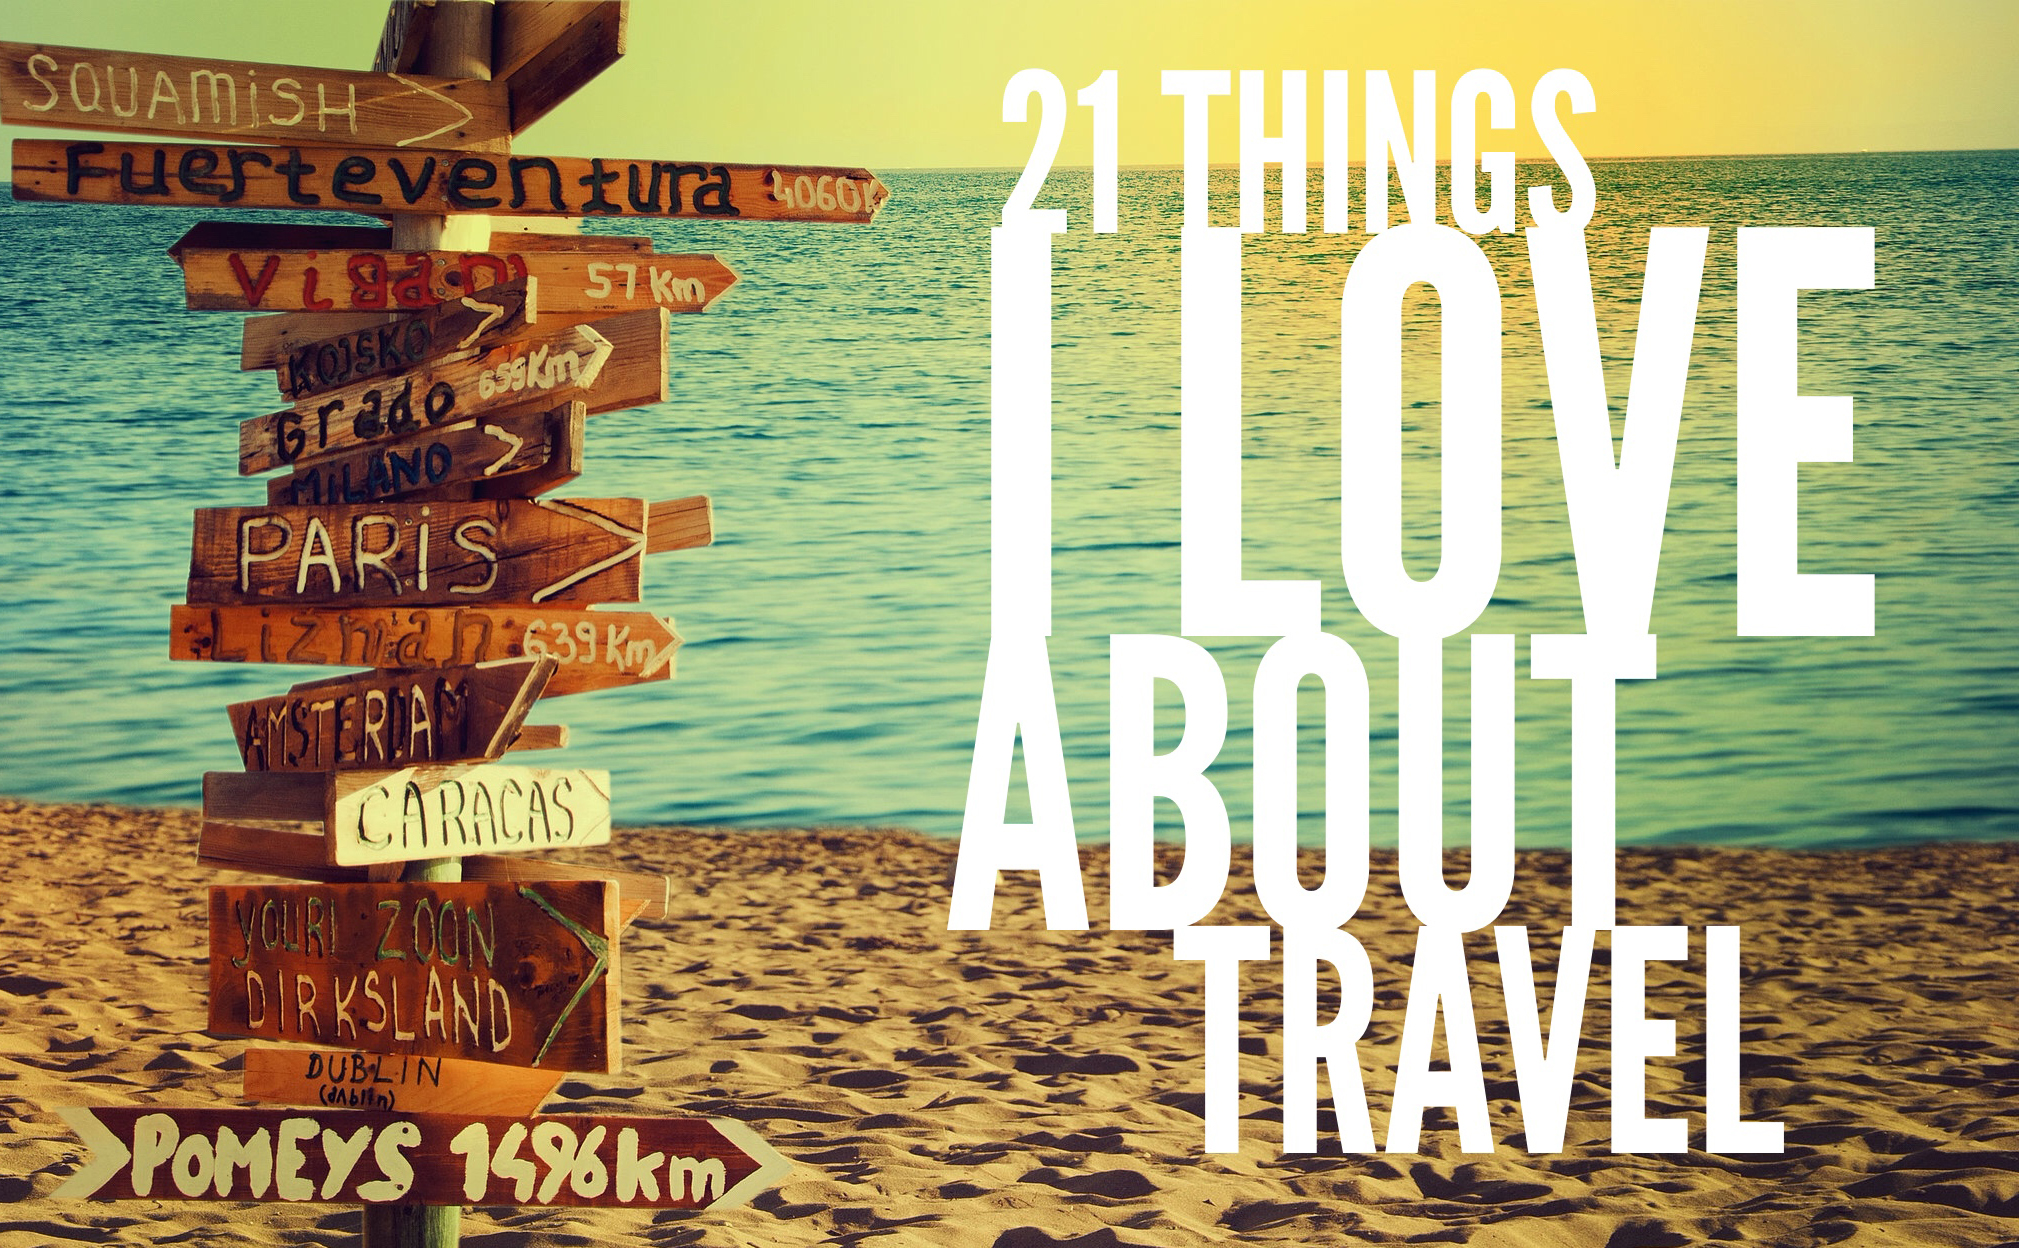 21 things travel